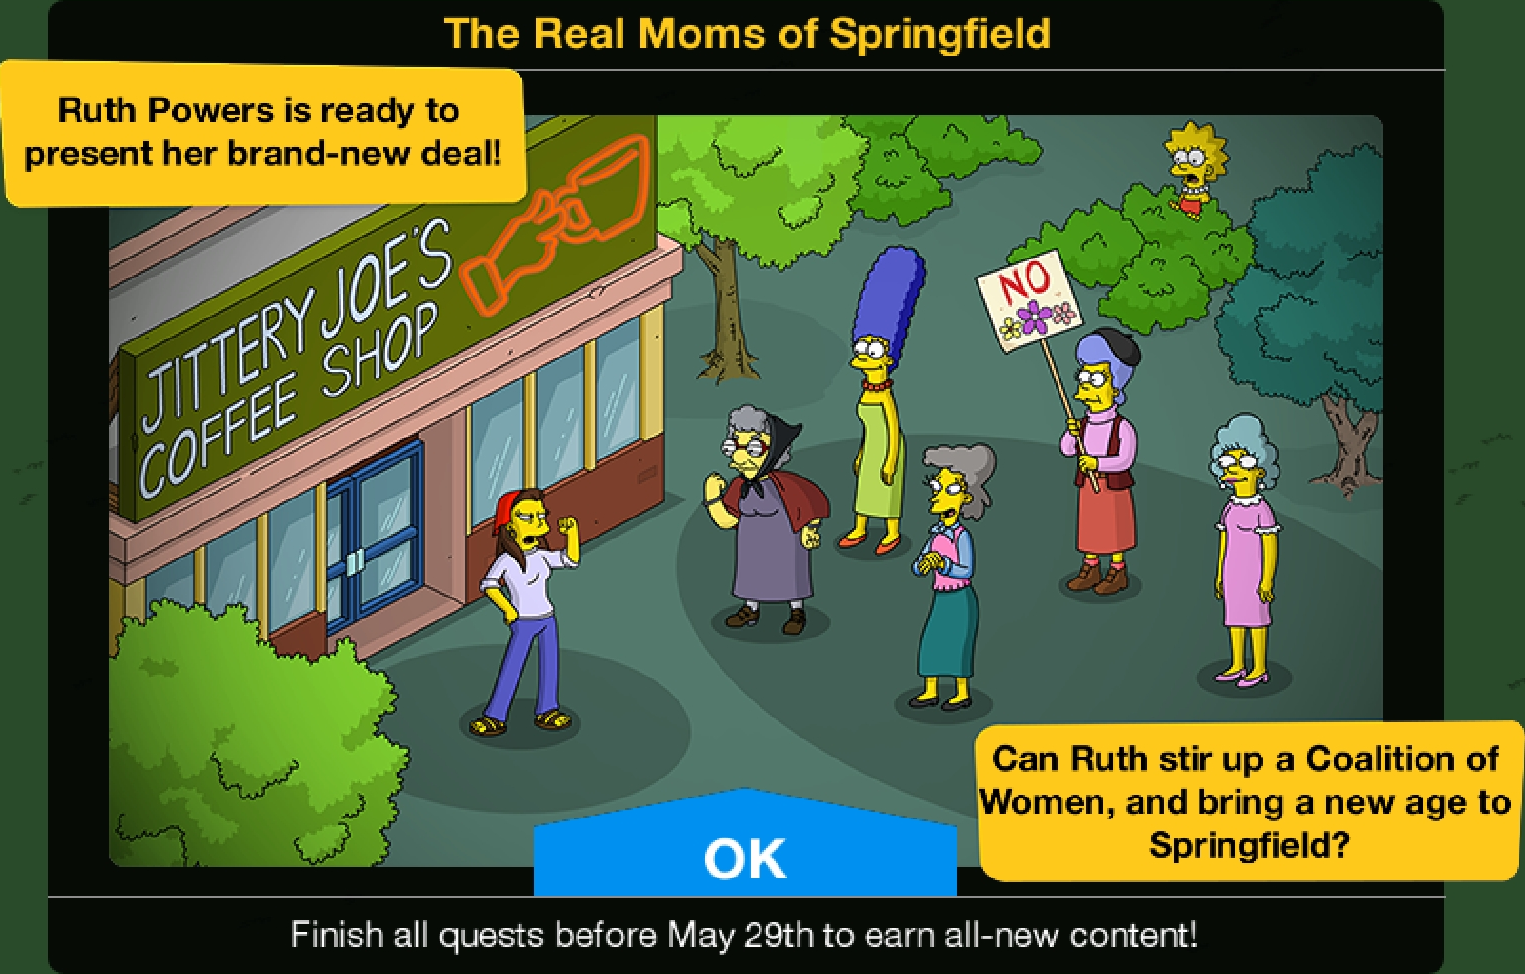 The_Real_Moms_of_Springfield_Event_Guide.png